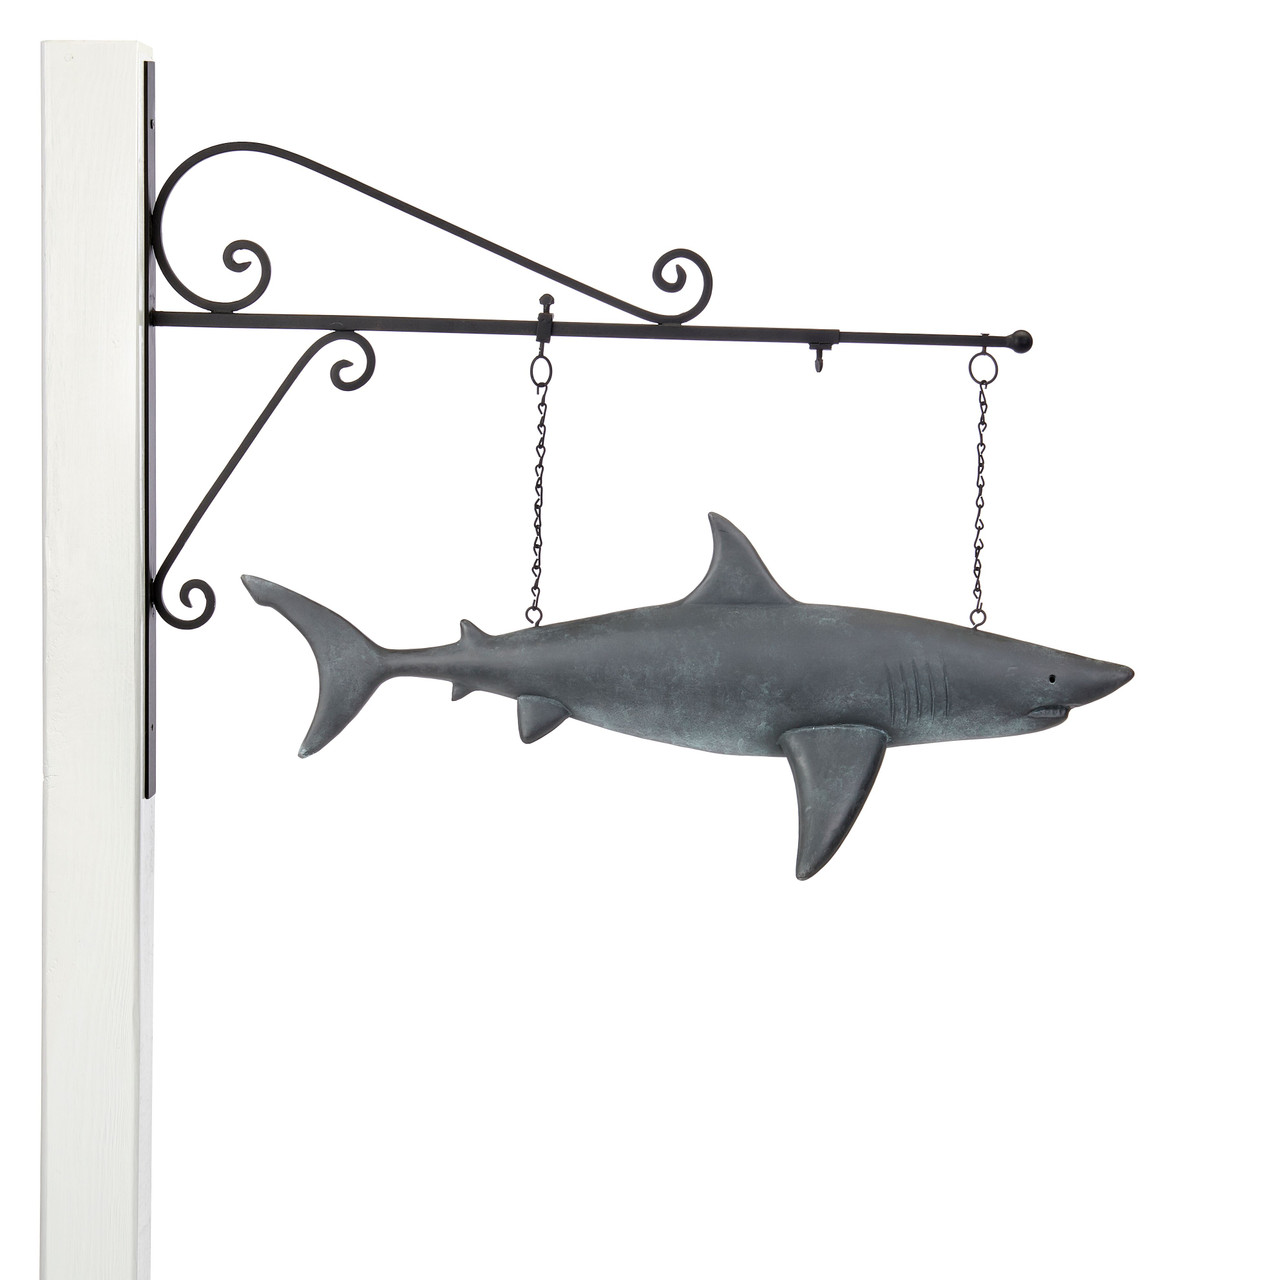 Shark Hanging Wall Sculpture - Pure Copper Hand Finished Multi-Color Patina - Nautical Home Décor by Good Directions